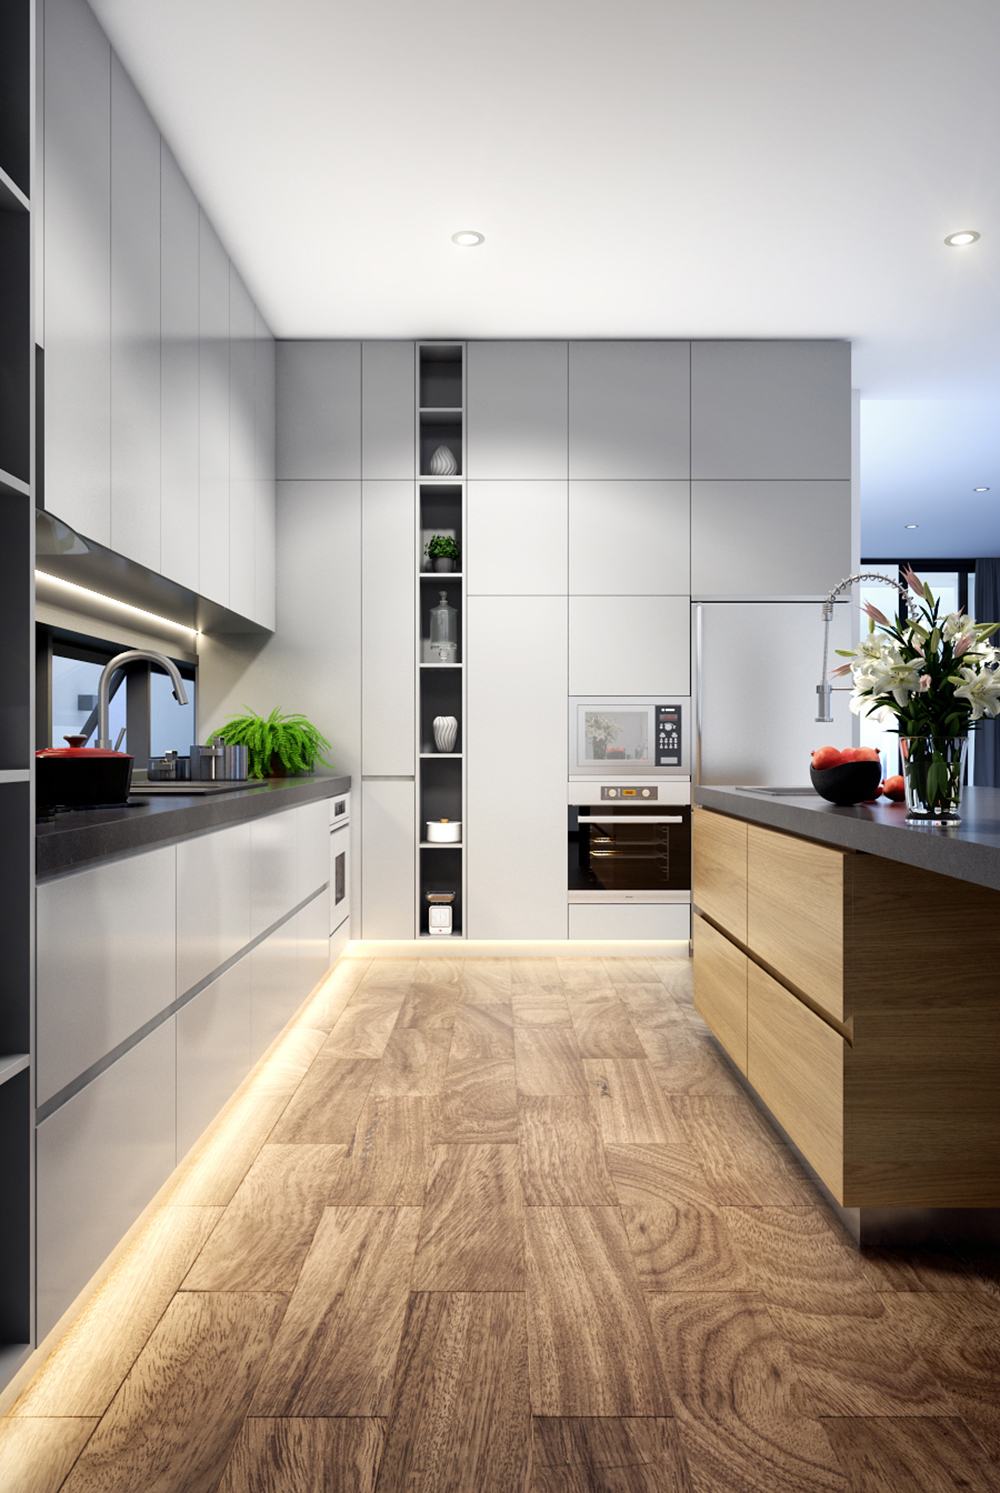 GJ-Kitchens-modren-and-contemporary-4-20180815033658894